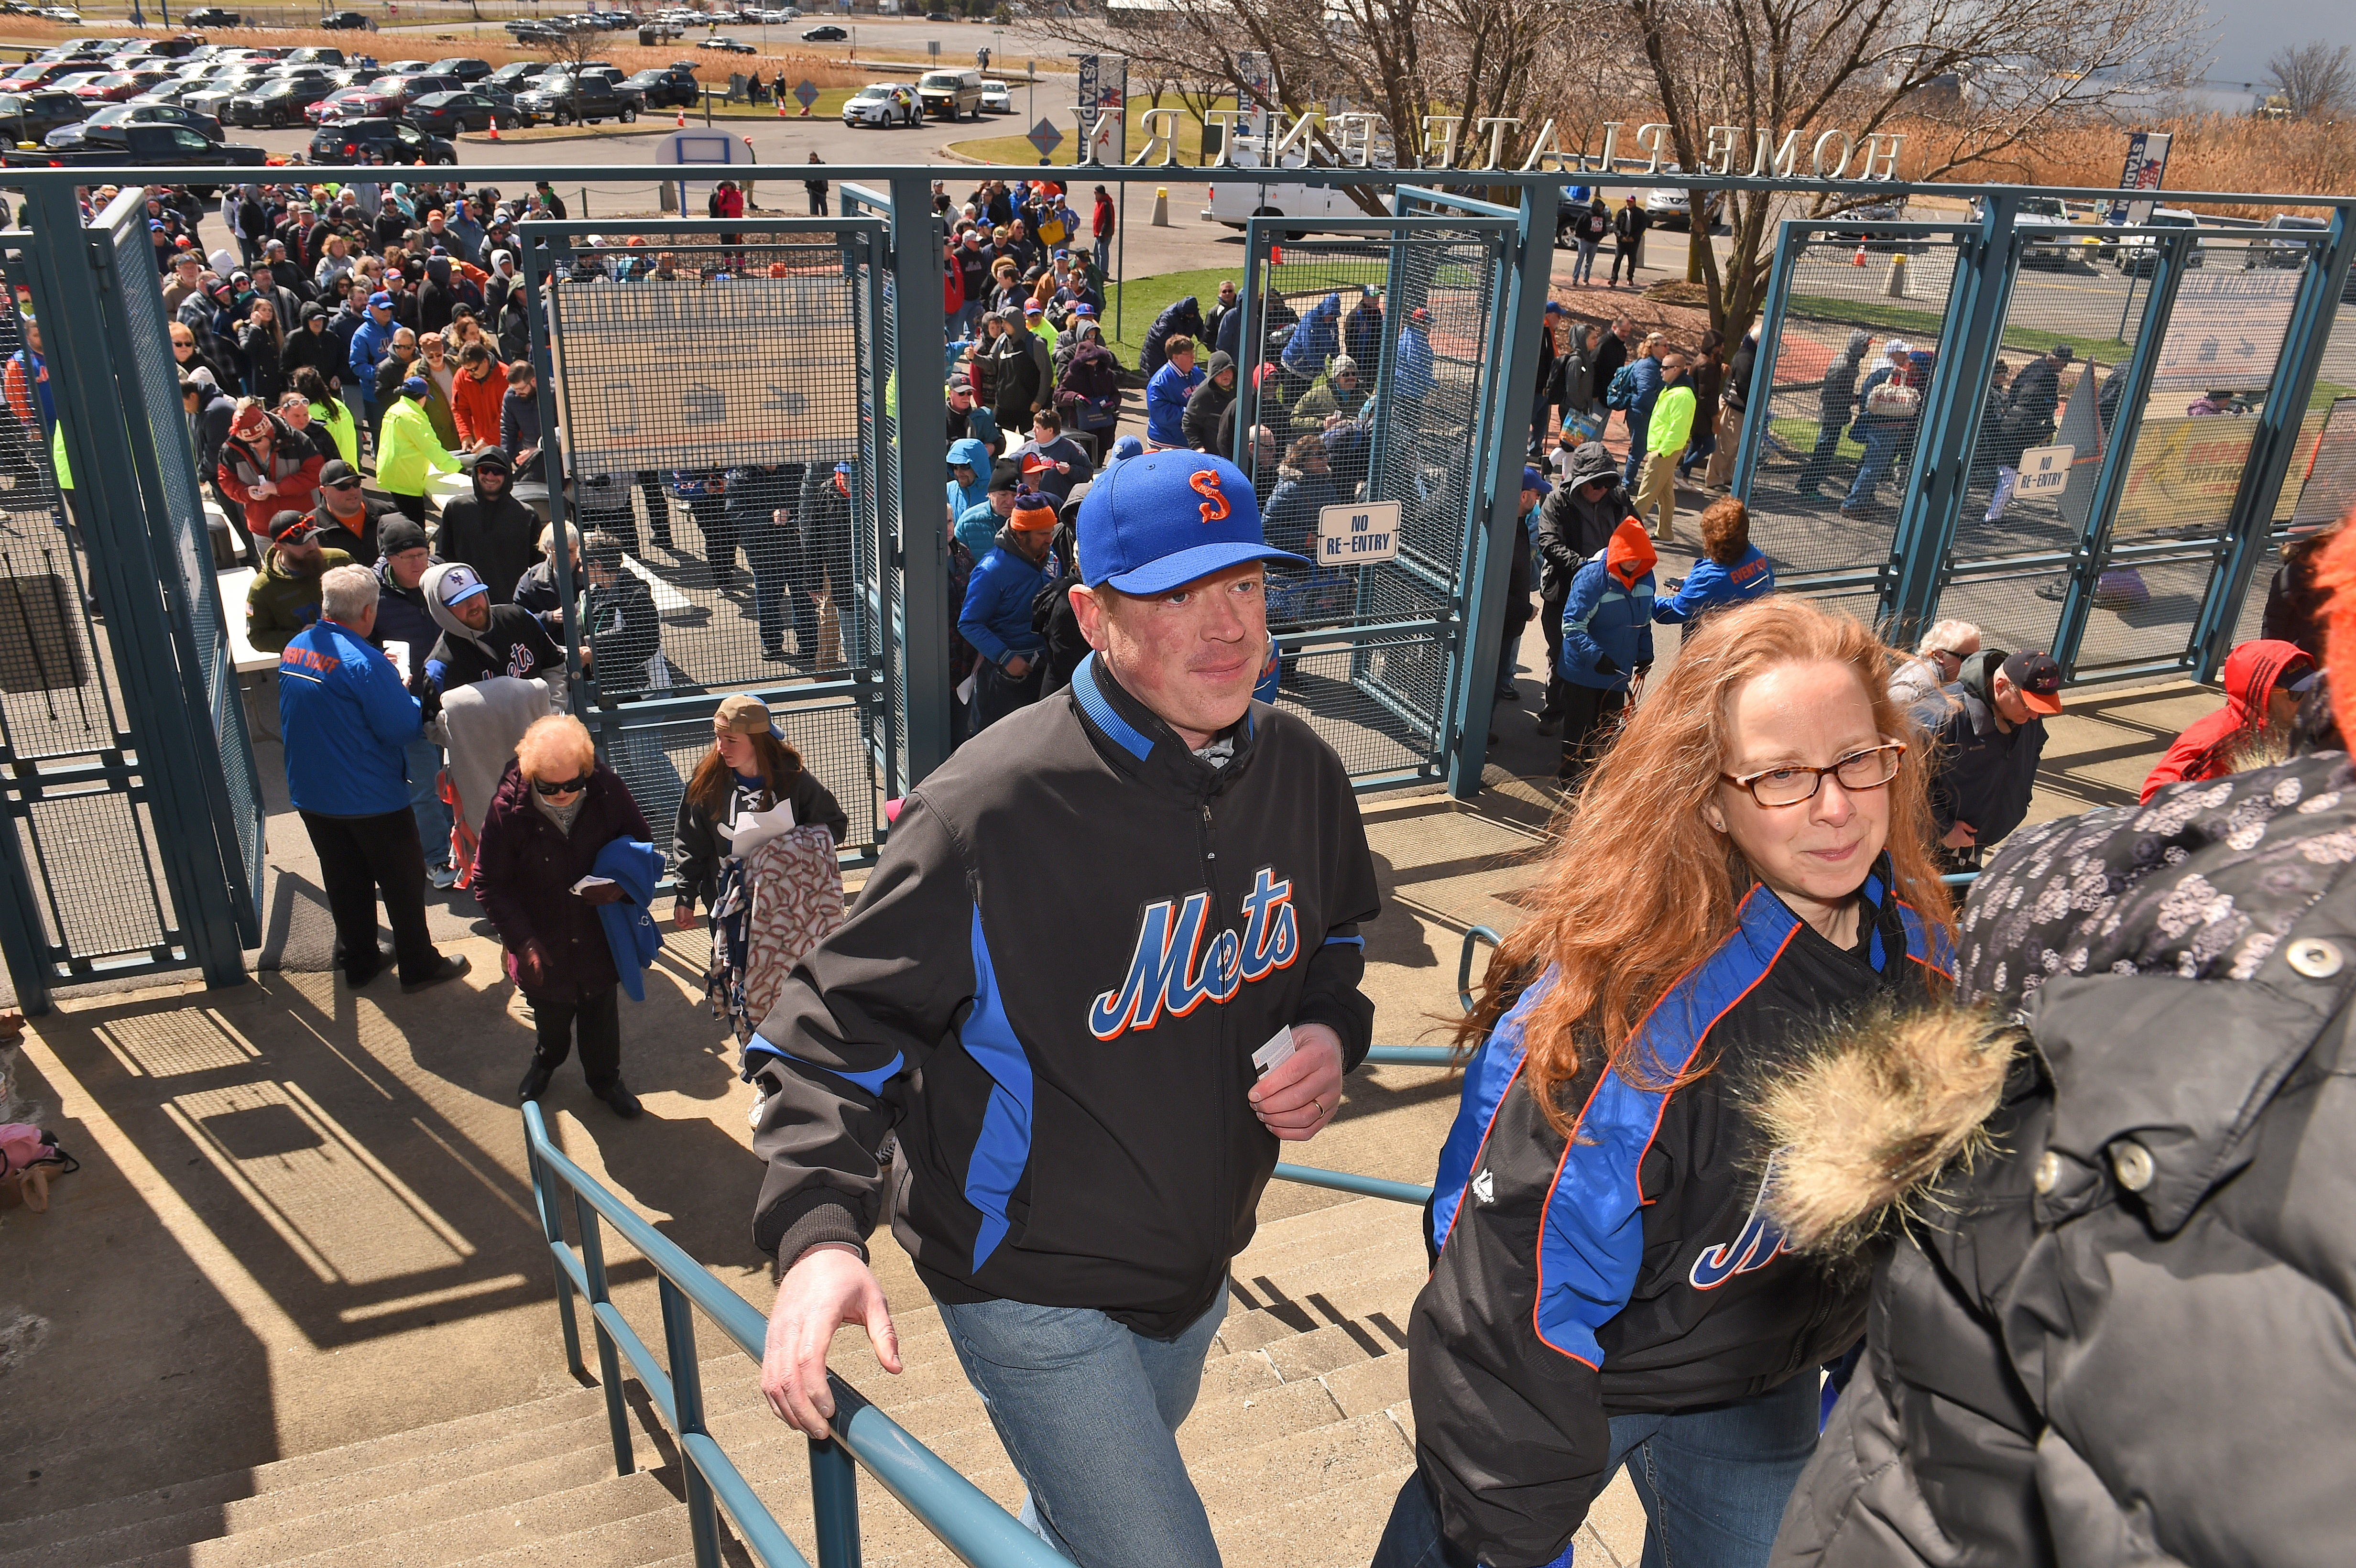 First year of Mets affiliation jolts Syracuse attendance